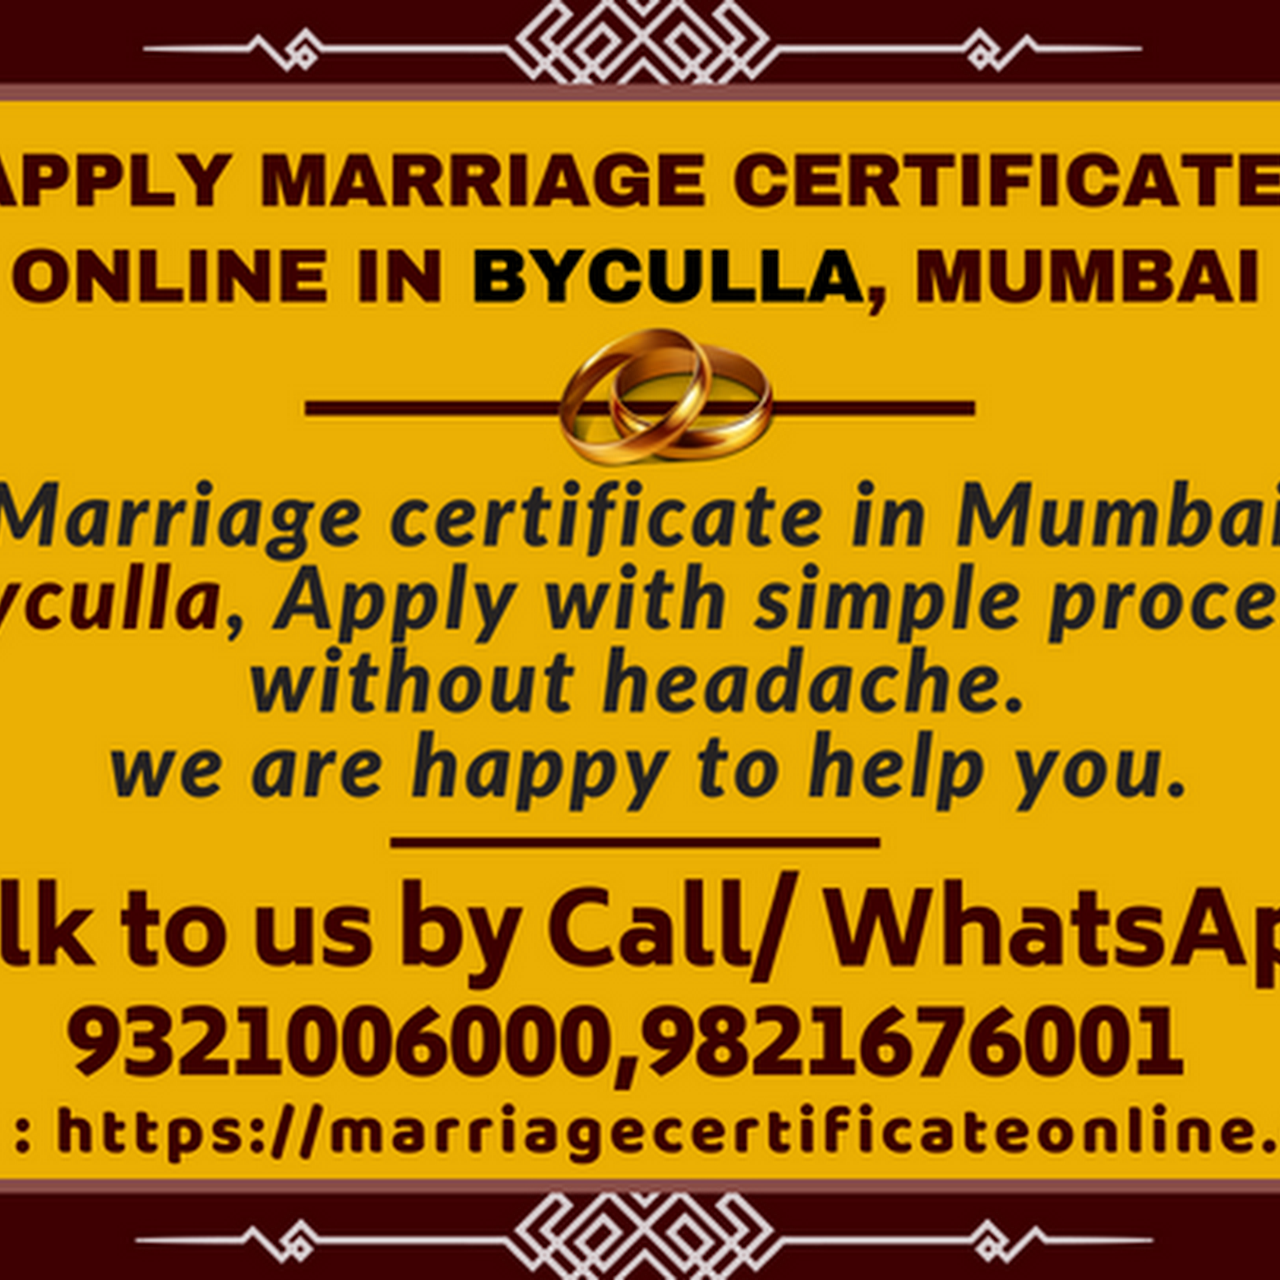 Marriage Certificate Online Services Mumbai Get Your Marriage